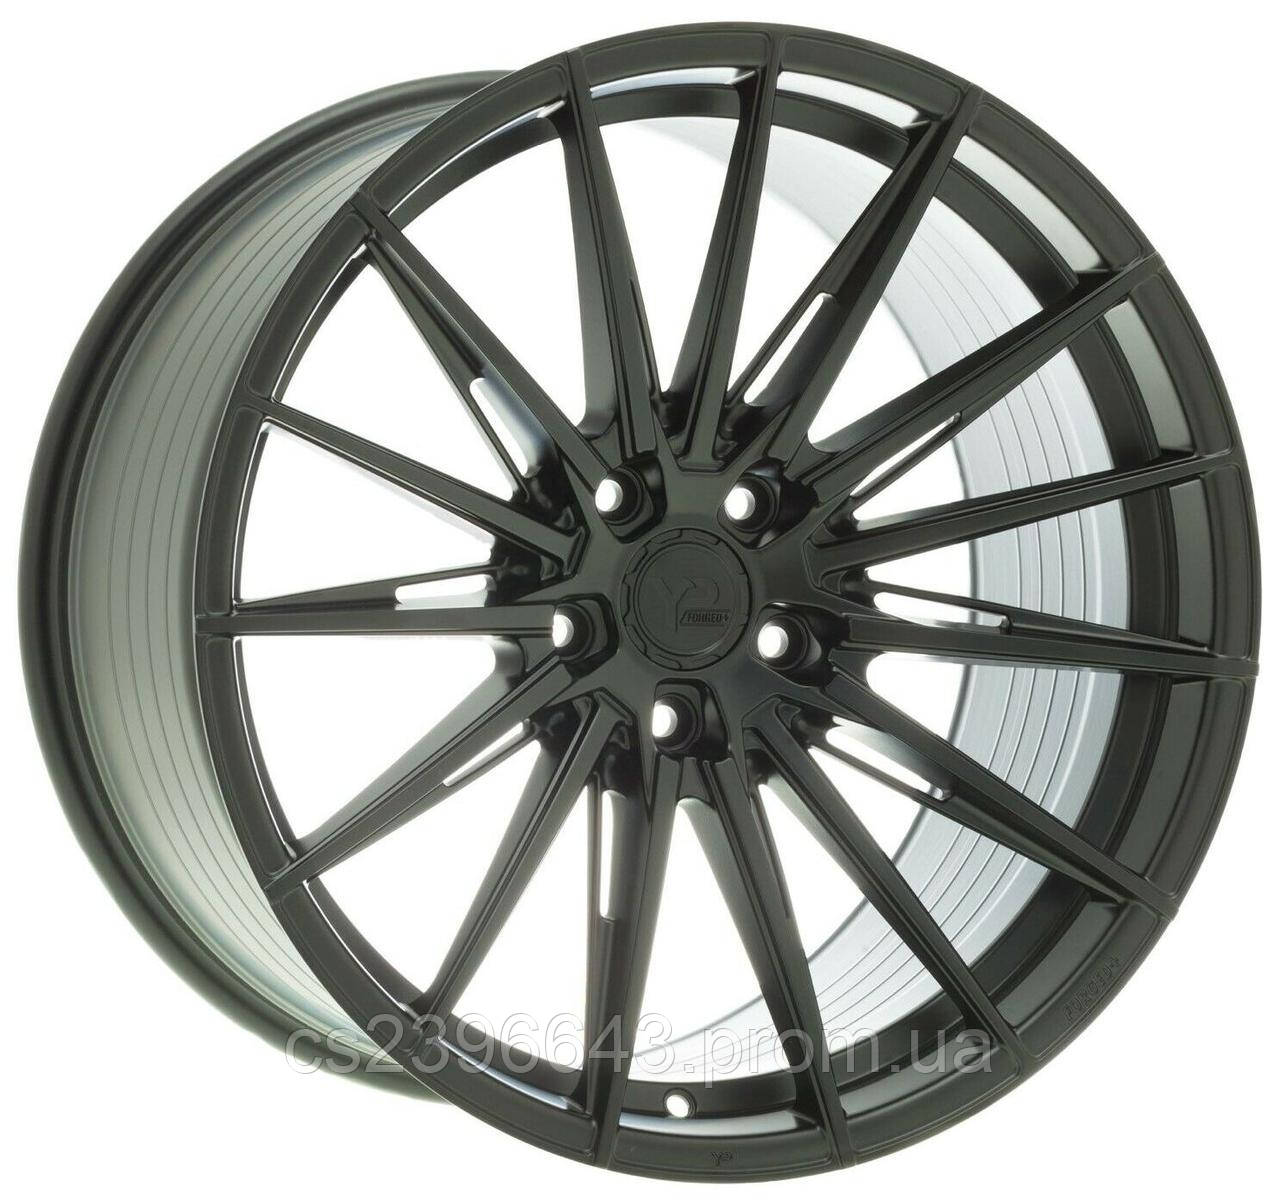 Колесный диск Yido Performance Forged+ 20x8,5 ET45